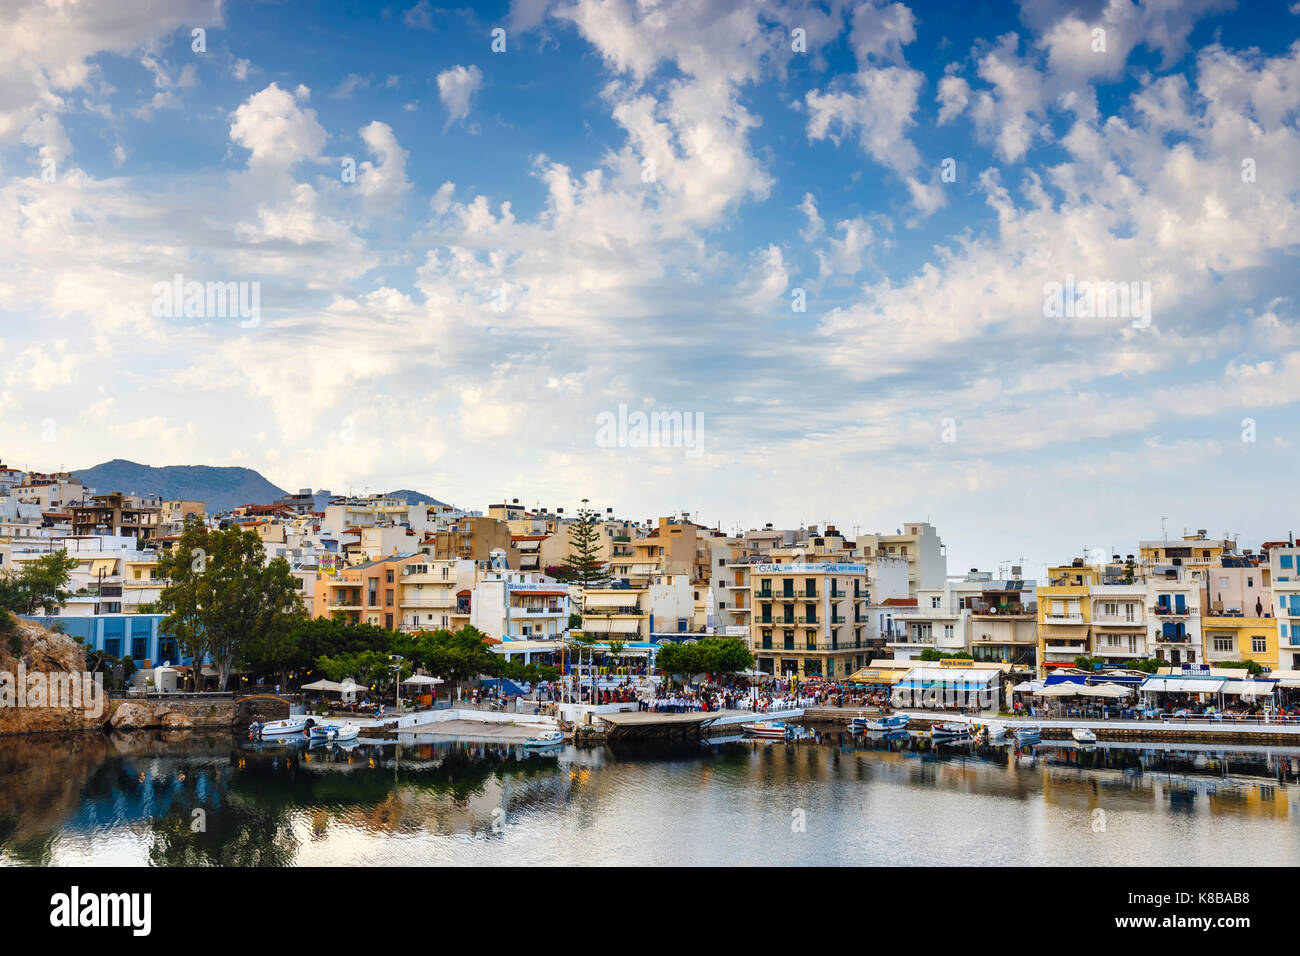 agios nikolaos single guys On the north coast of eastern crete, 65 kilometers east of heraklion, áyios nikólaos (agios nikolaos) lies on the slopes above mirabello bay, close to elounda, where you'll find crete's most.